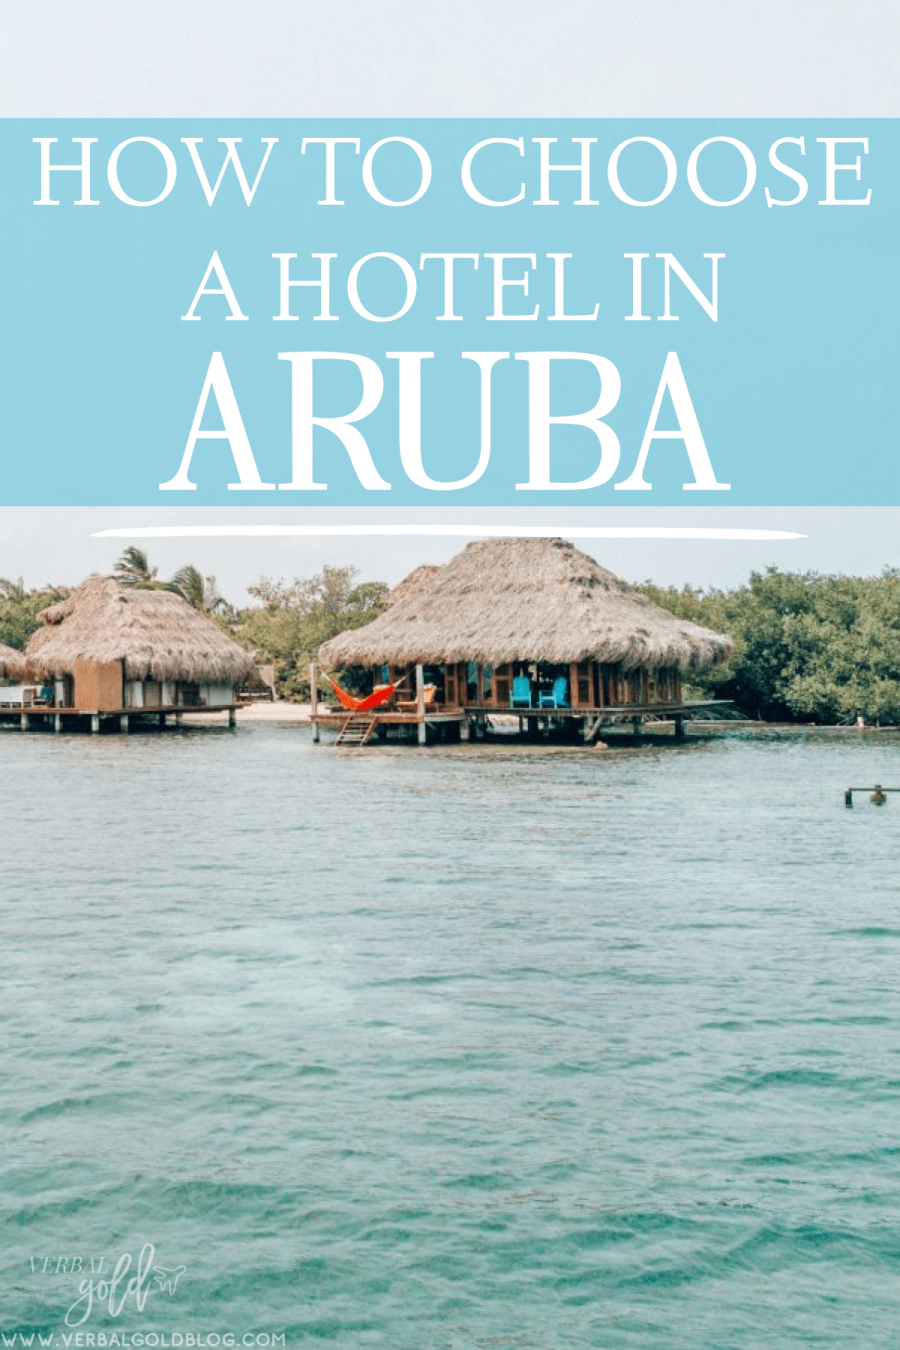 Wondering where to stay in Aruba? Here's how to choose a hotel in Aruba for any budget!